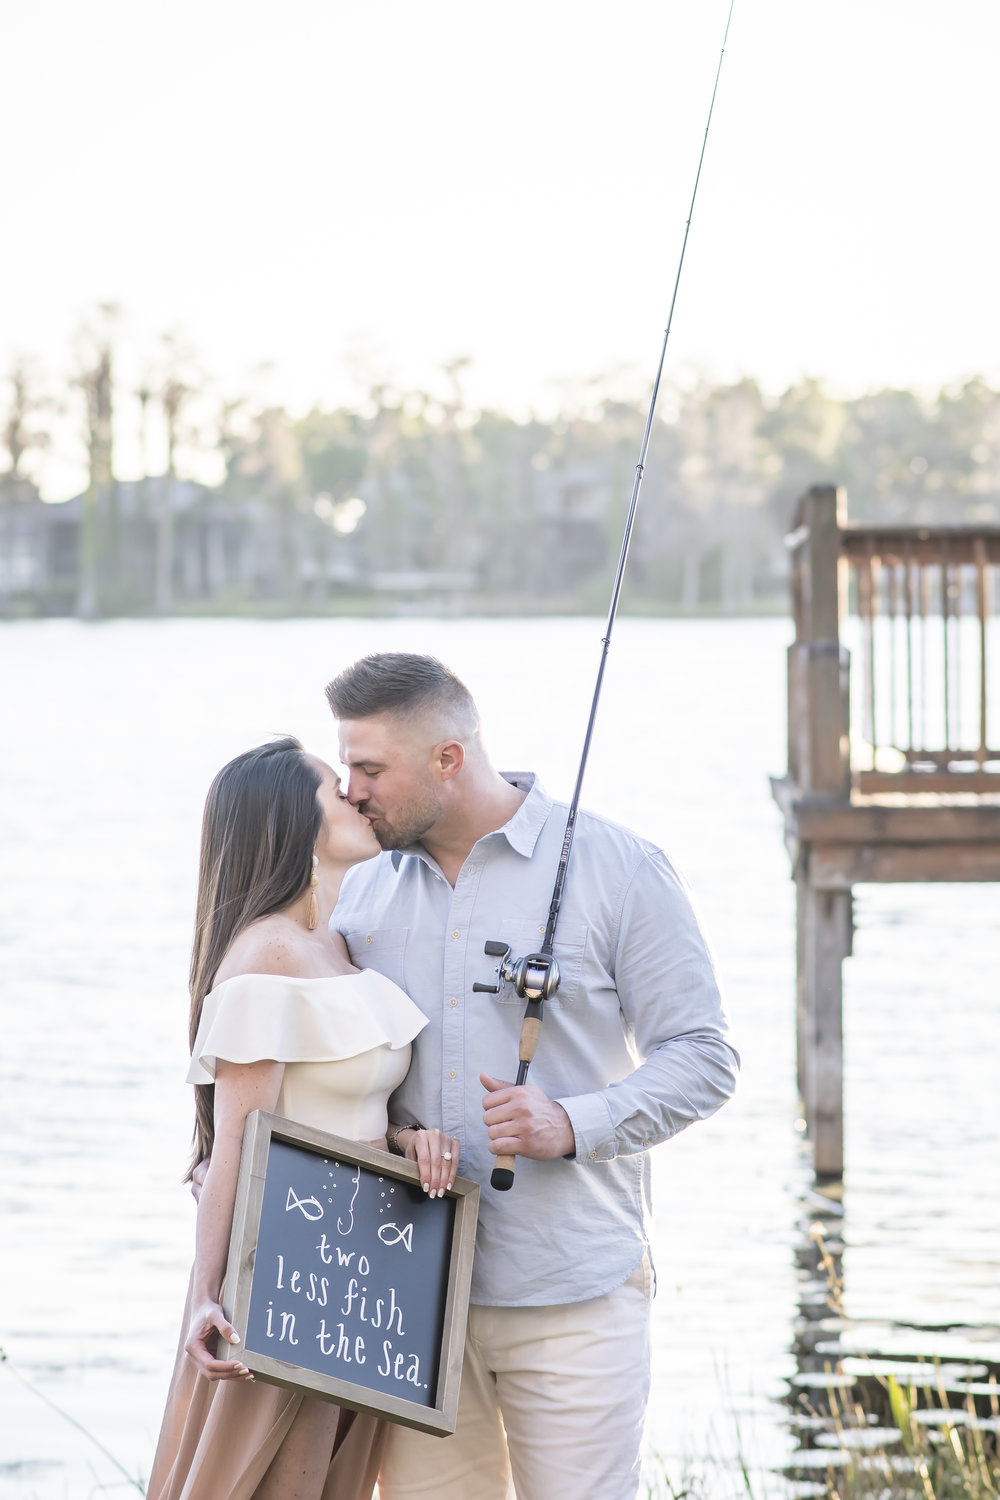 cypress-grove-park-engagement-session-orlando-photographer-yanitza-ninett-10.jpg